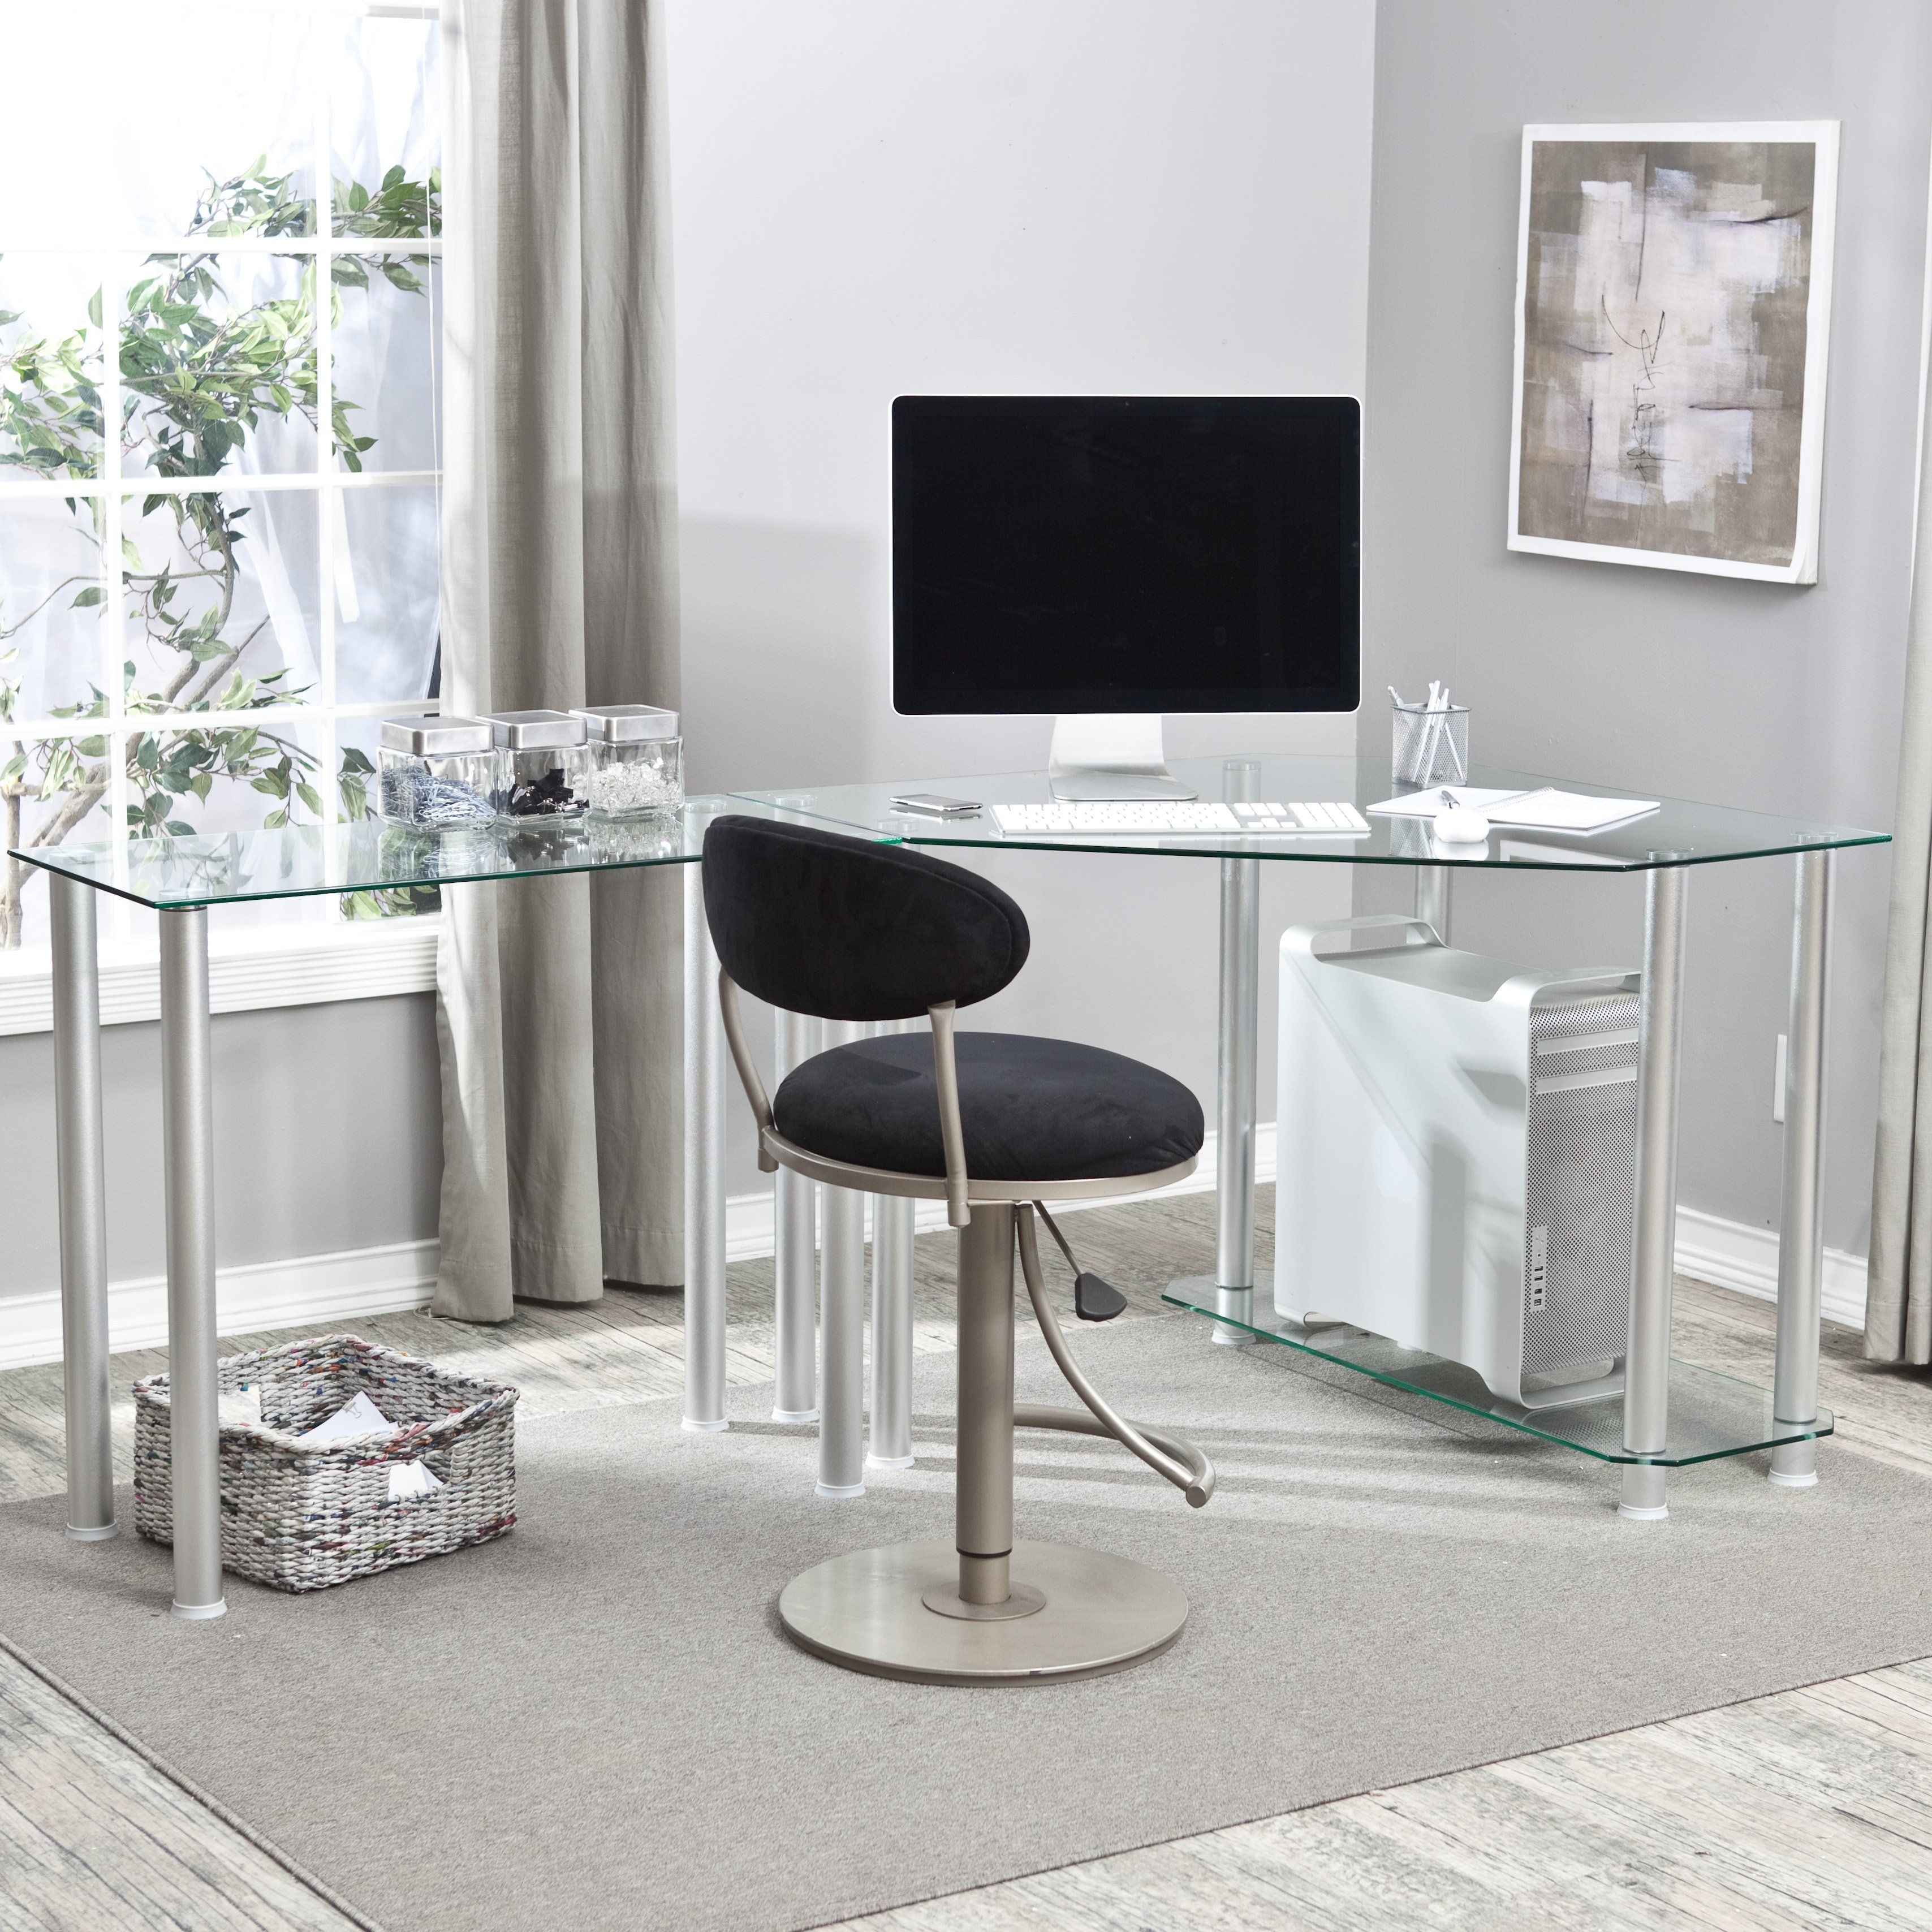 attachment techni in photos rta gallery furniture desks l recent mobili desk of computer shaped explore glass showing